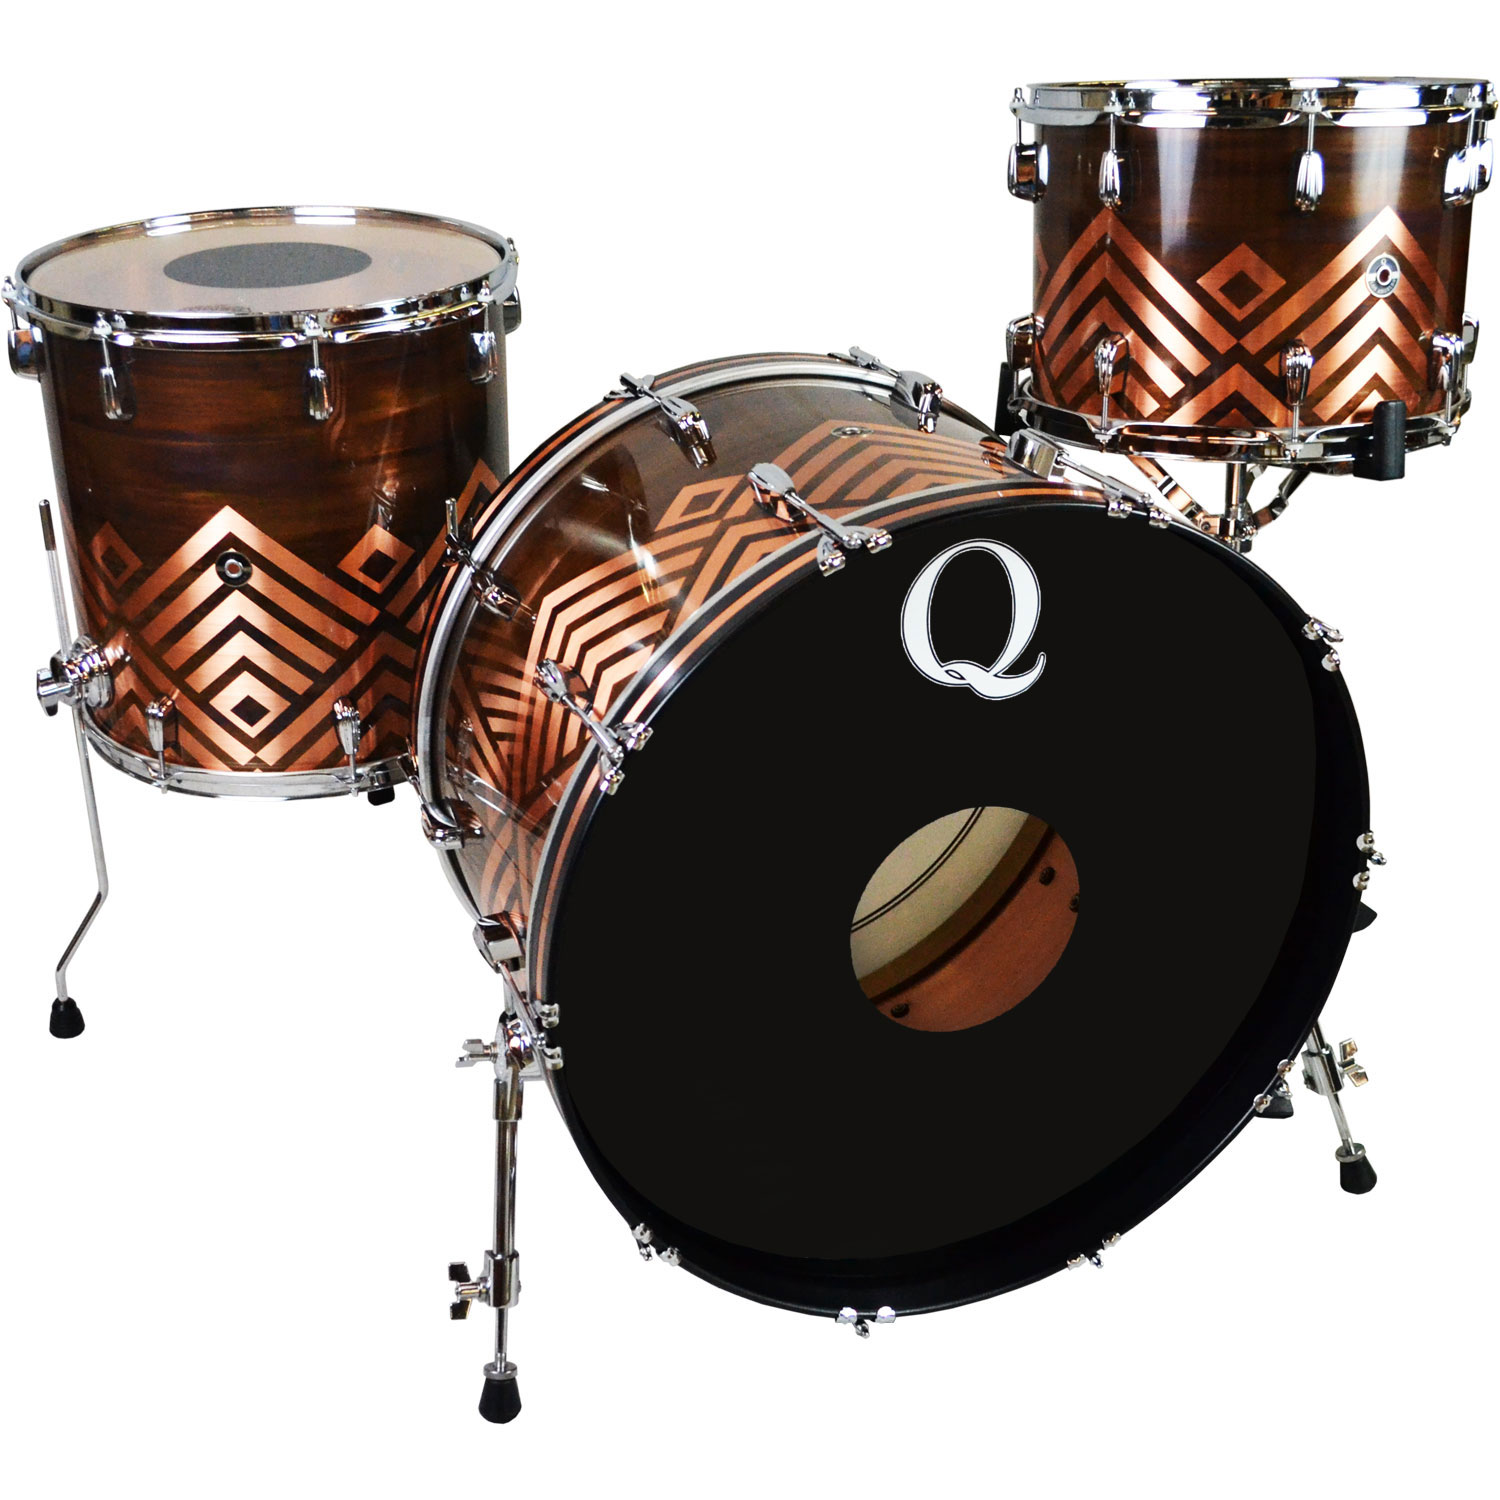 "Q Drum Co. Copper 3-Piece Drum Set Shell Pack (24"" Bass, 14/16"" Toms) in Tribal Patina"